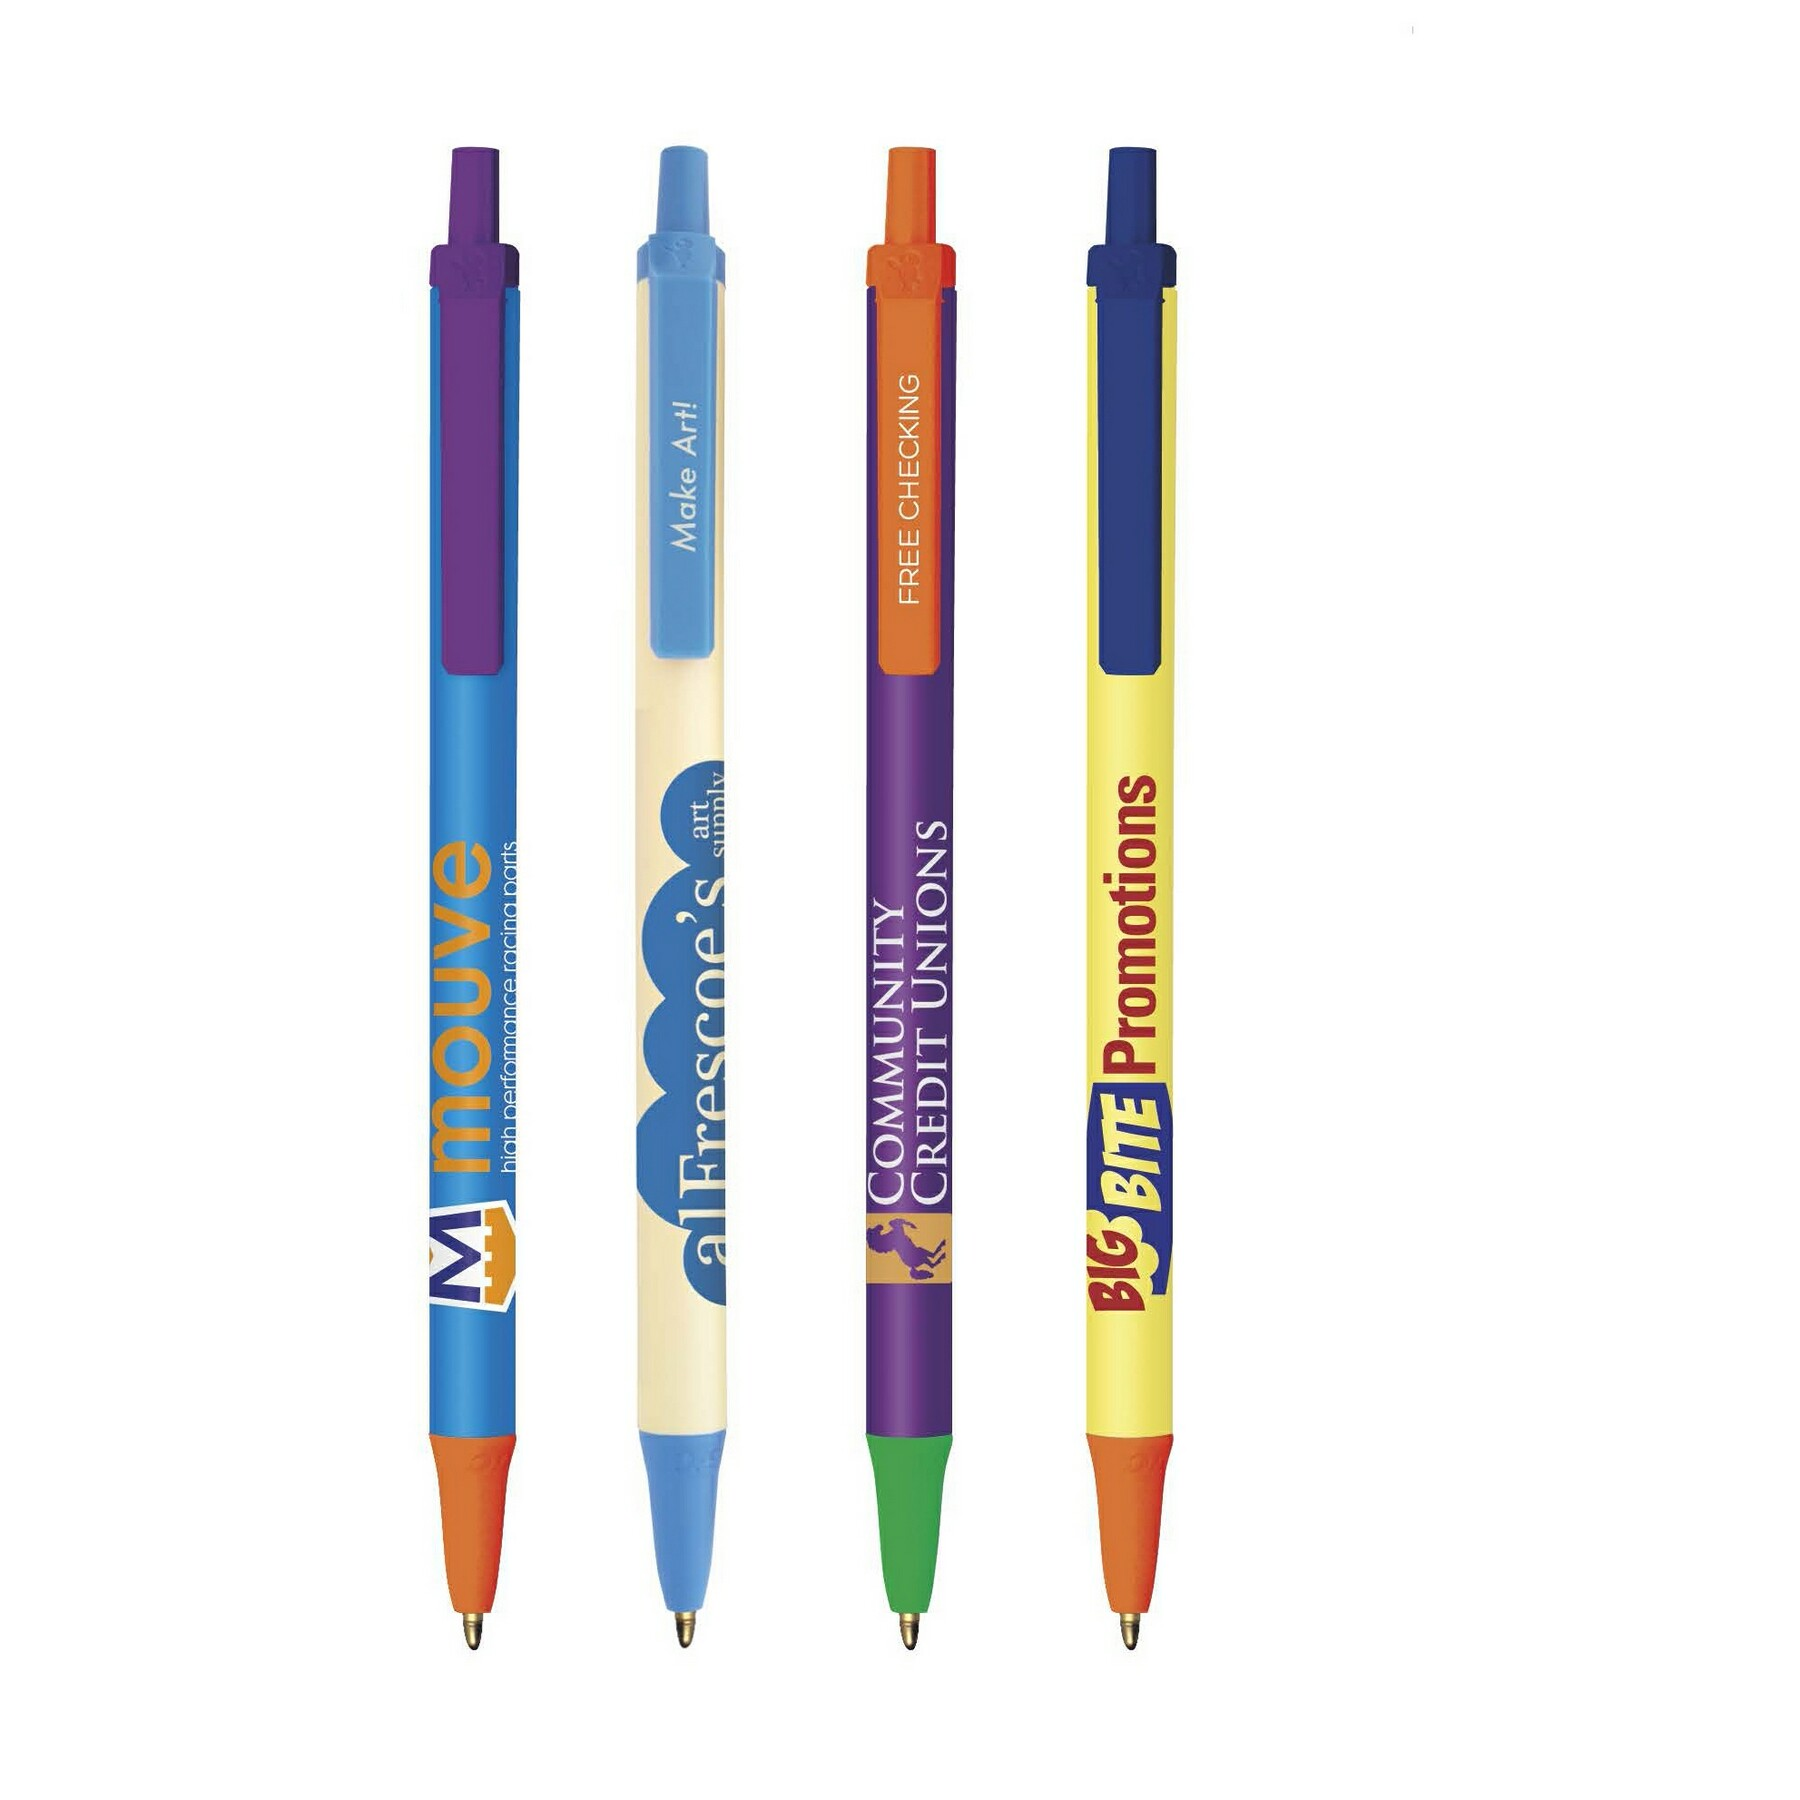 BIC Clic Stic ColorMax Pen, #CSCM, 1 Colour Imprint